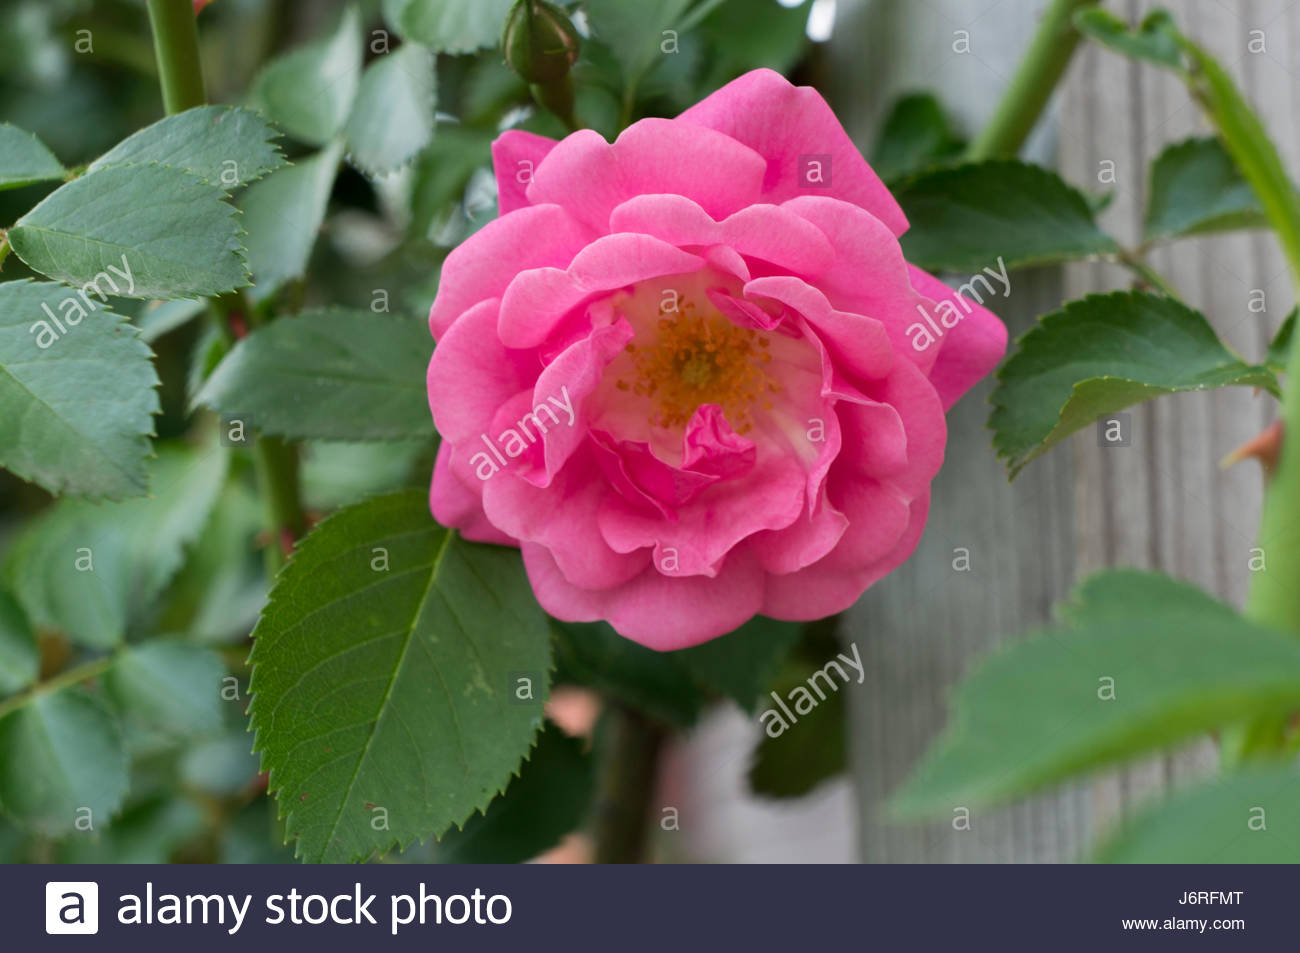 pink roses in the garden - Stock Image